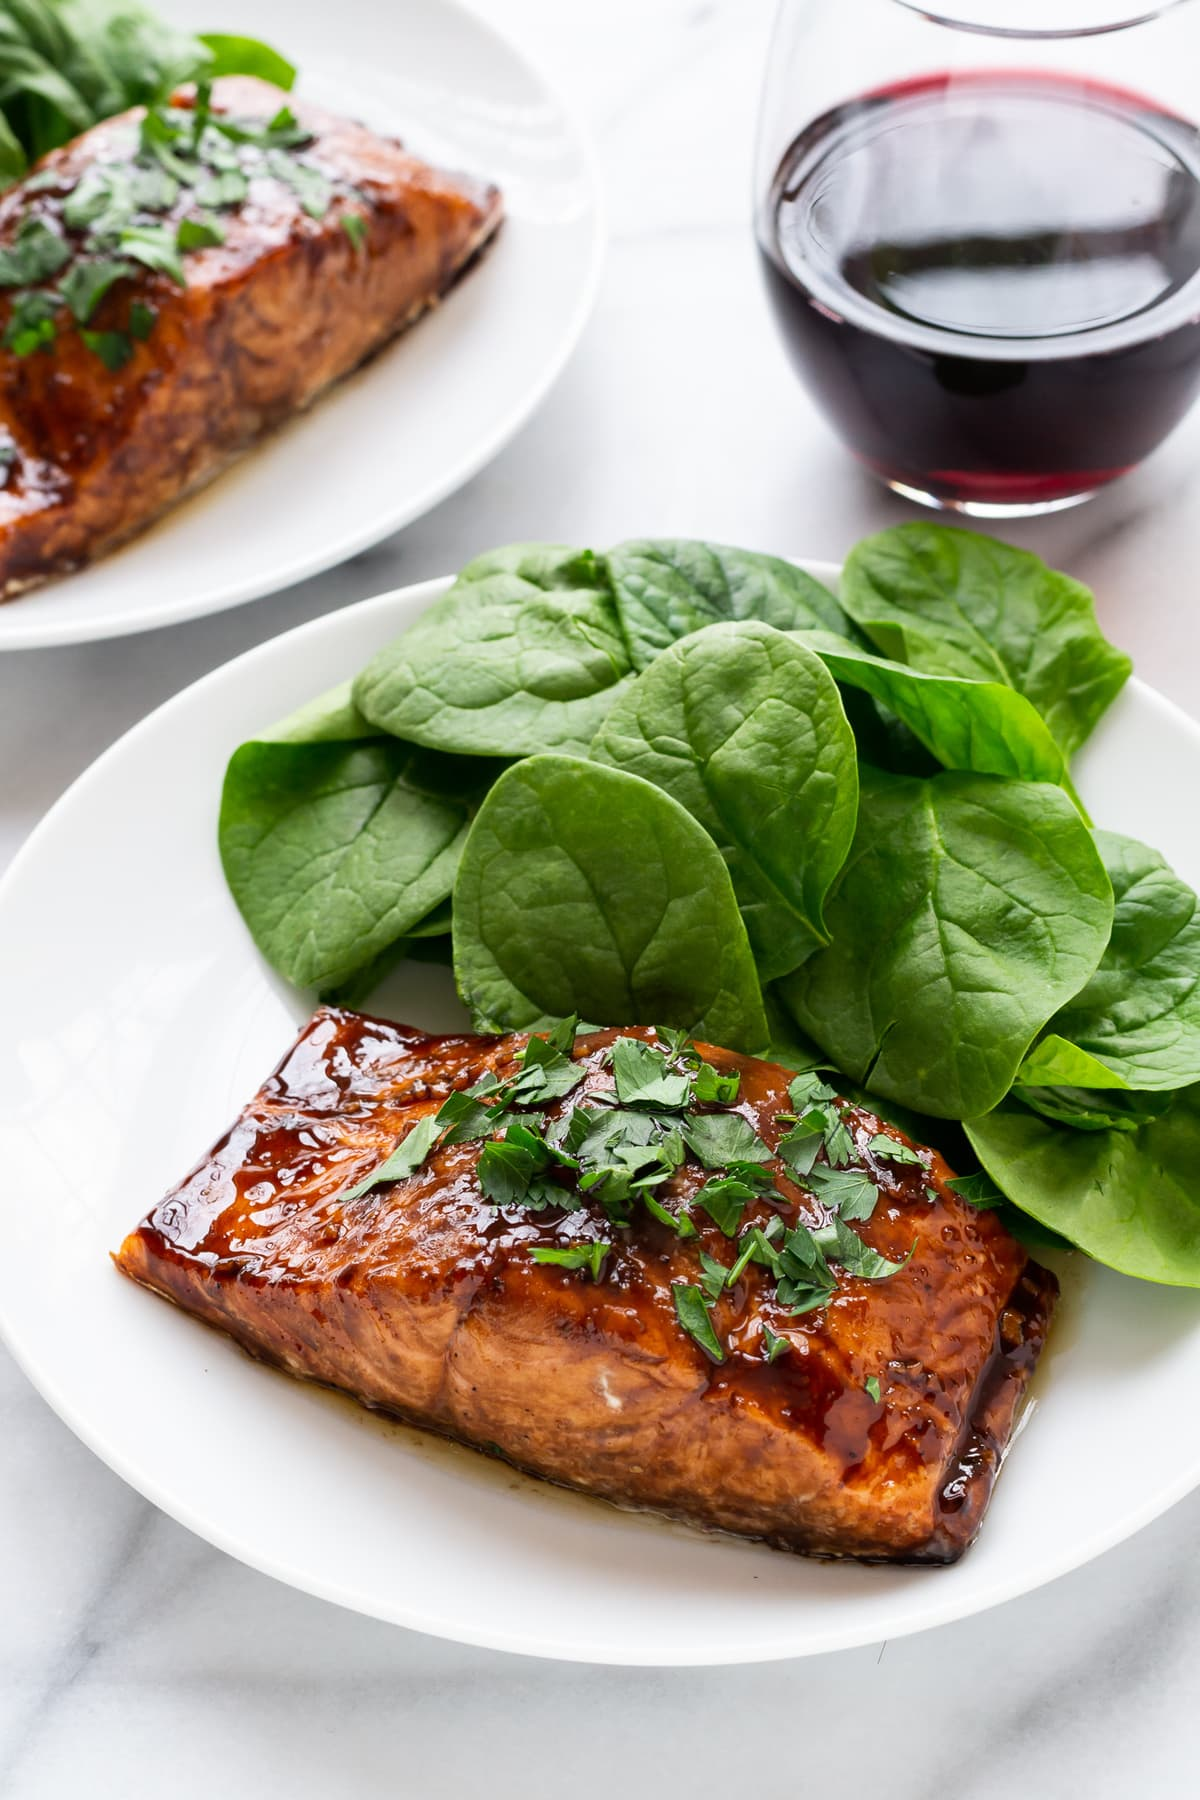 salmon filet coated with a balsamic glaze on a white dinner plate with fresh spinach